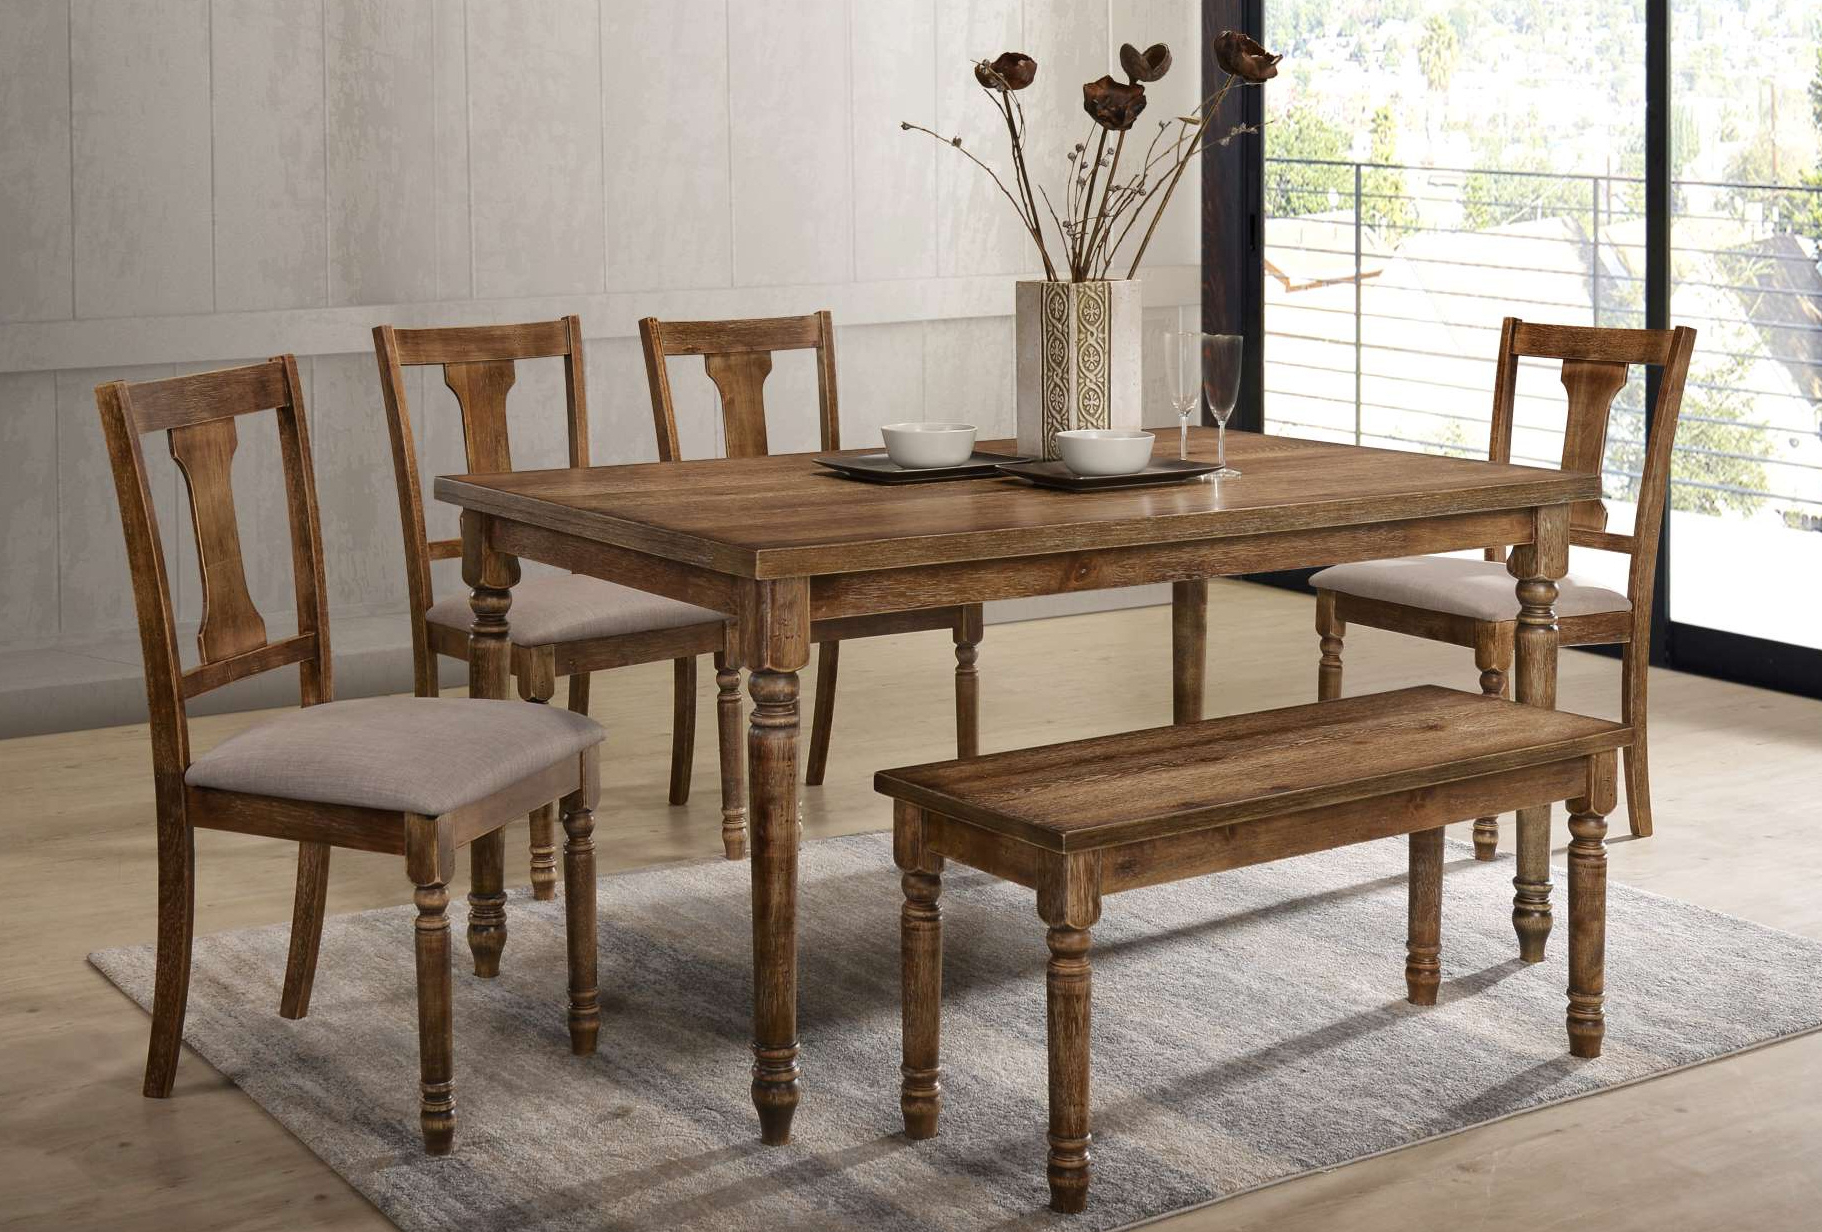 Wood Dinettes And Kitchen Sets Regarding Most Popular Charcoal Transitional 6 Seating Rectangular Dining Tables (View 27 of 30)